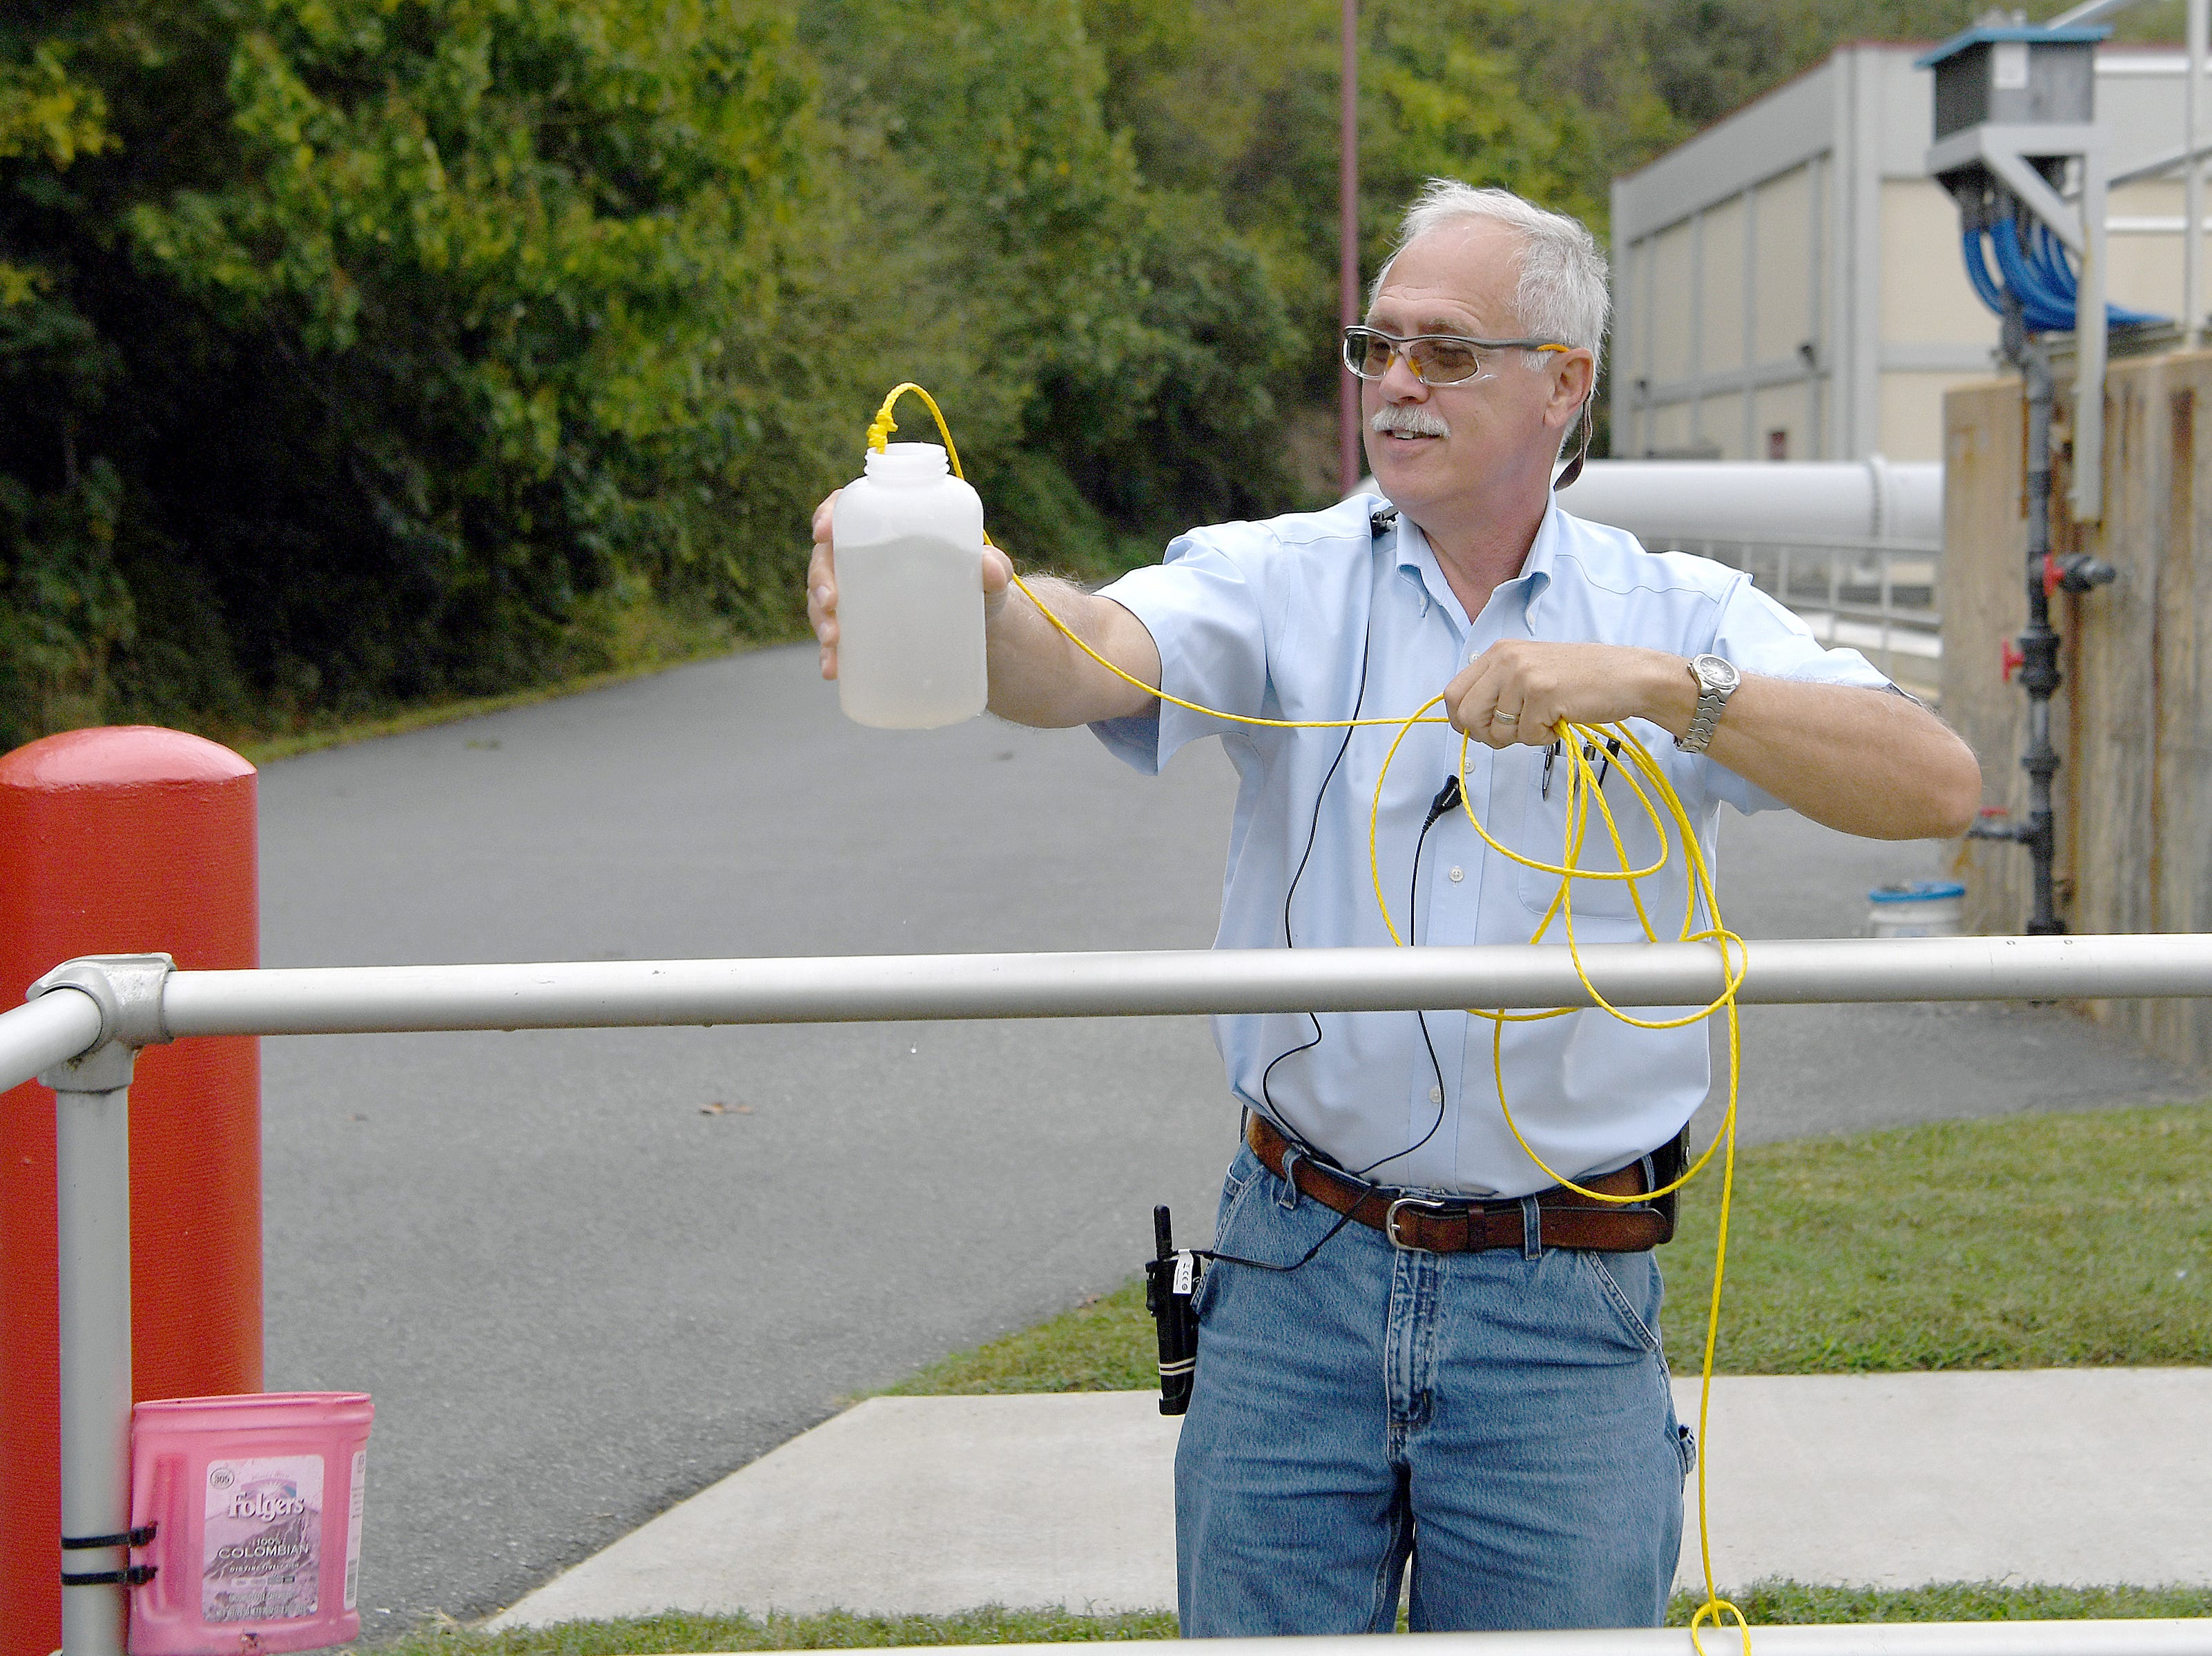 Roger Edwards, Wastewater Reclamation Facility Operations Manager, shows how clean the water leaving the facility has become after treatment as it is released back into the French Broad River as he gives a tour on Oct. 9, 2018.